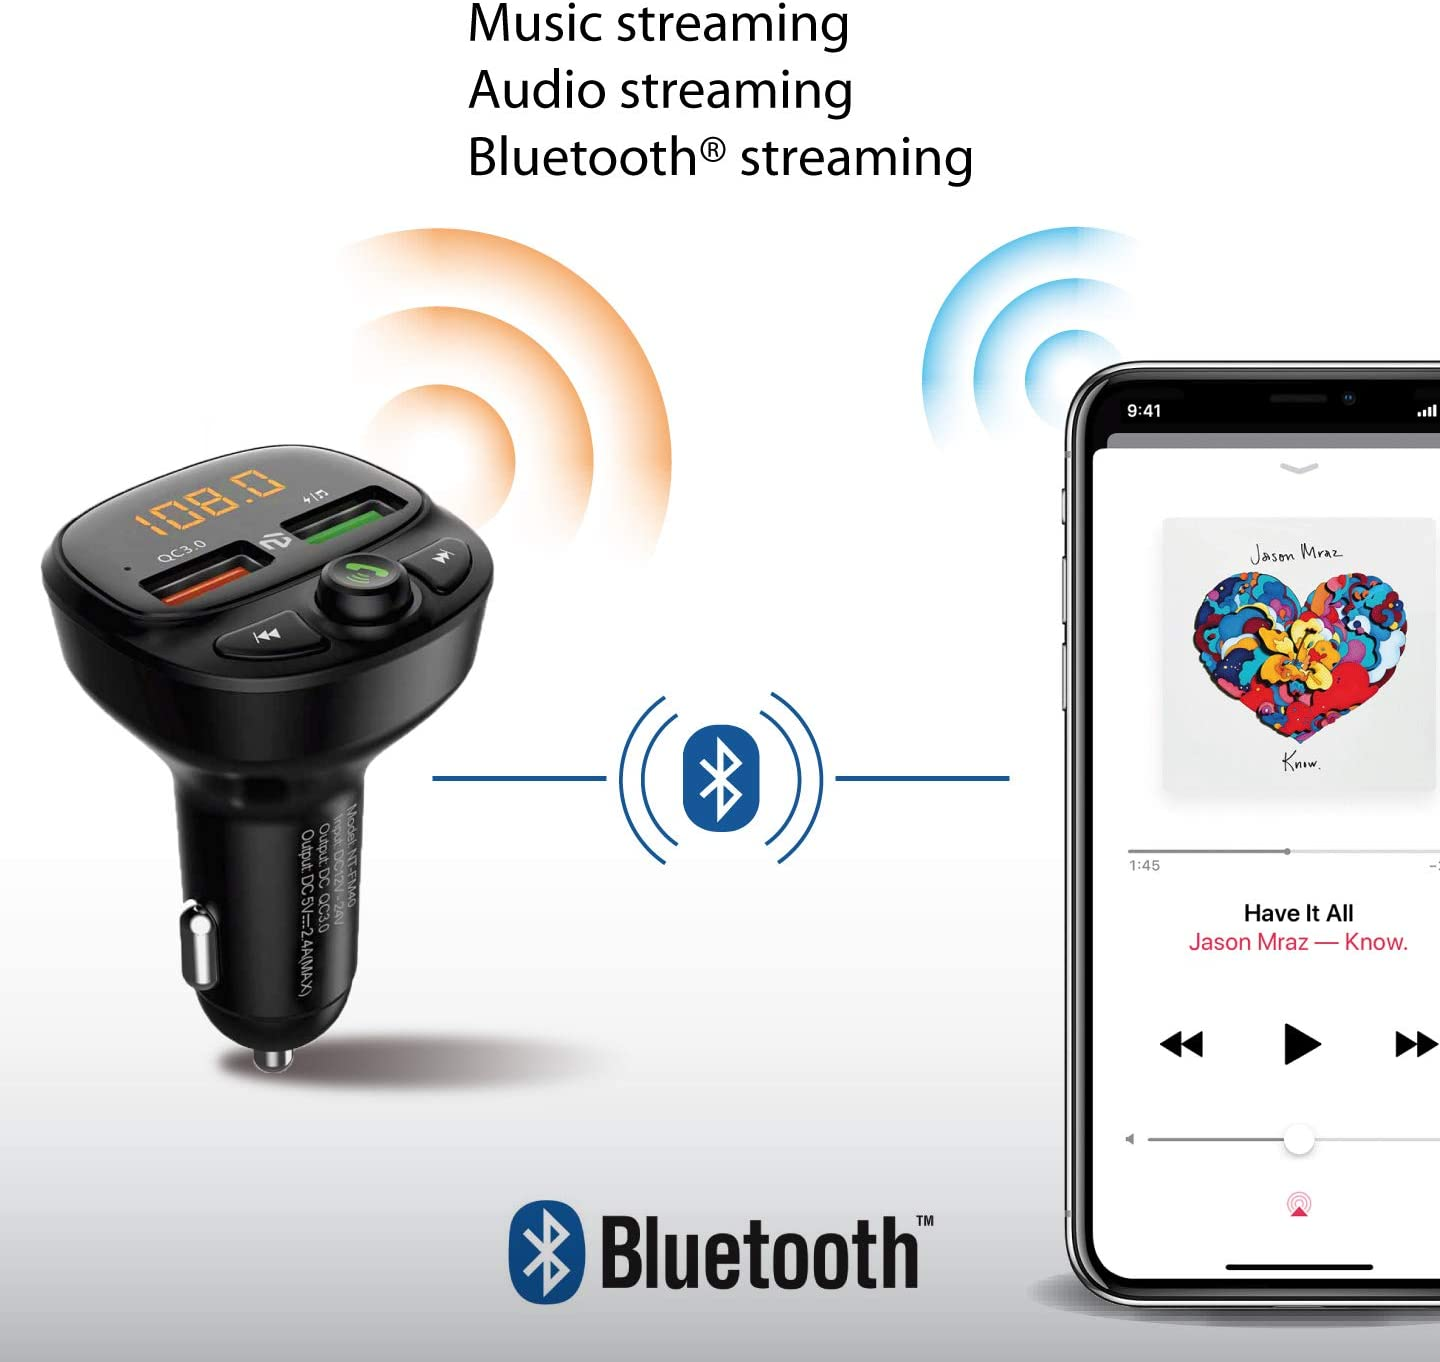 NT North Tech Bluetooth FM Transmitter for Car Black NT-FM40 Supports USB Flash Drive QC3.0 Car Radio Bluetooth Adapter Music Player Hands Free Car Kit with SD Card Slot